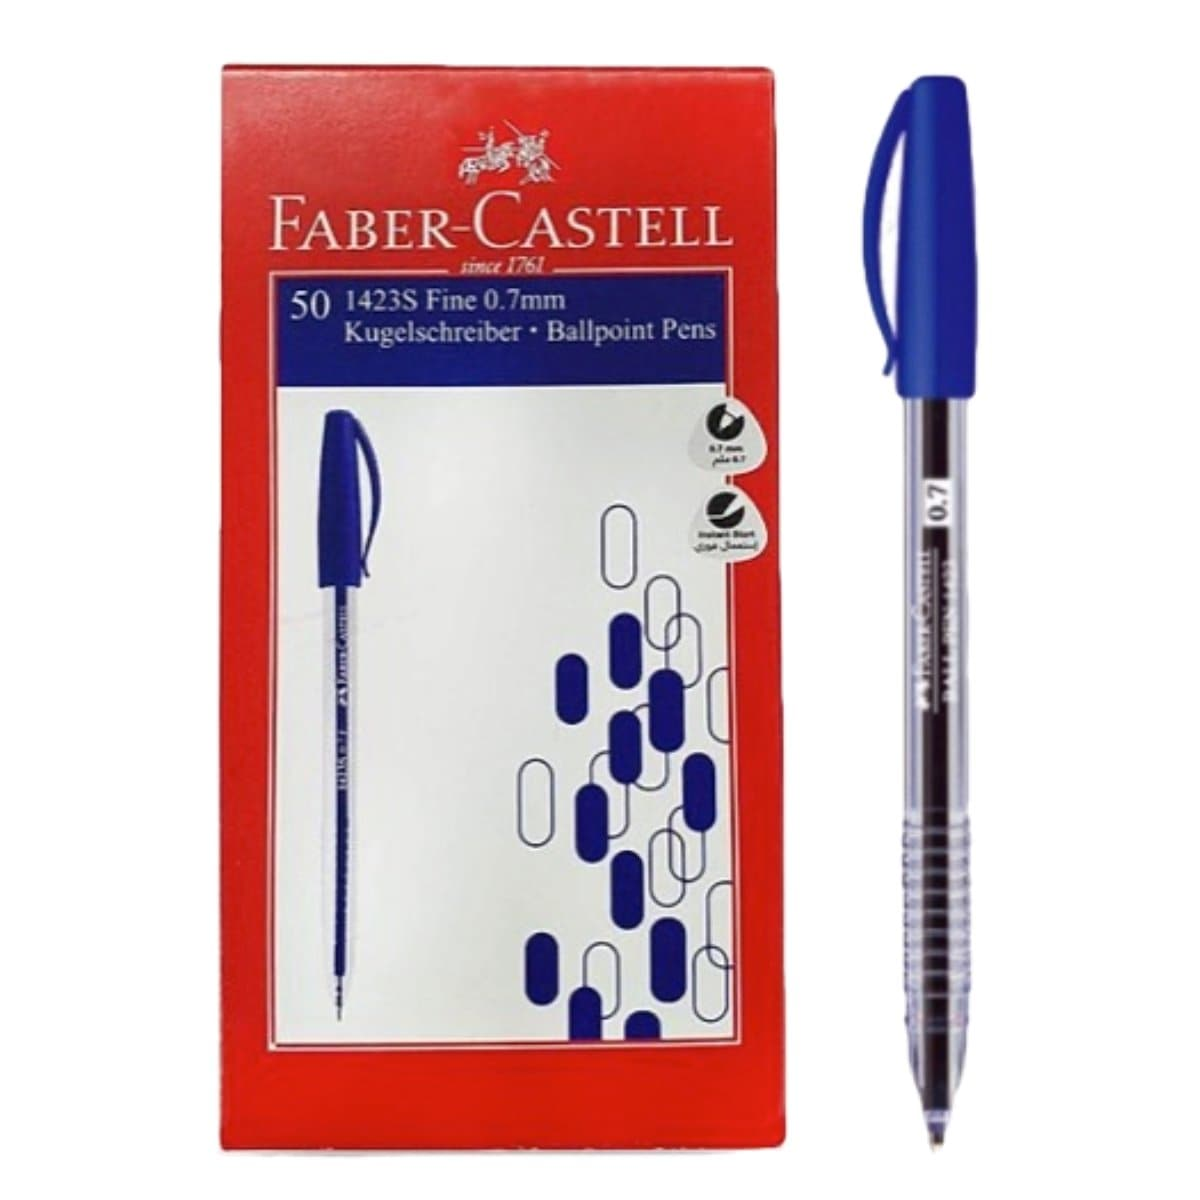 Faber Castell Ballpen 1423, 0.7mm, 50/box, Blue